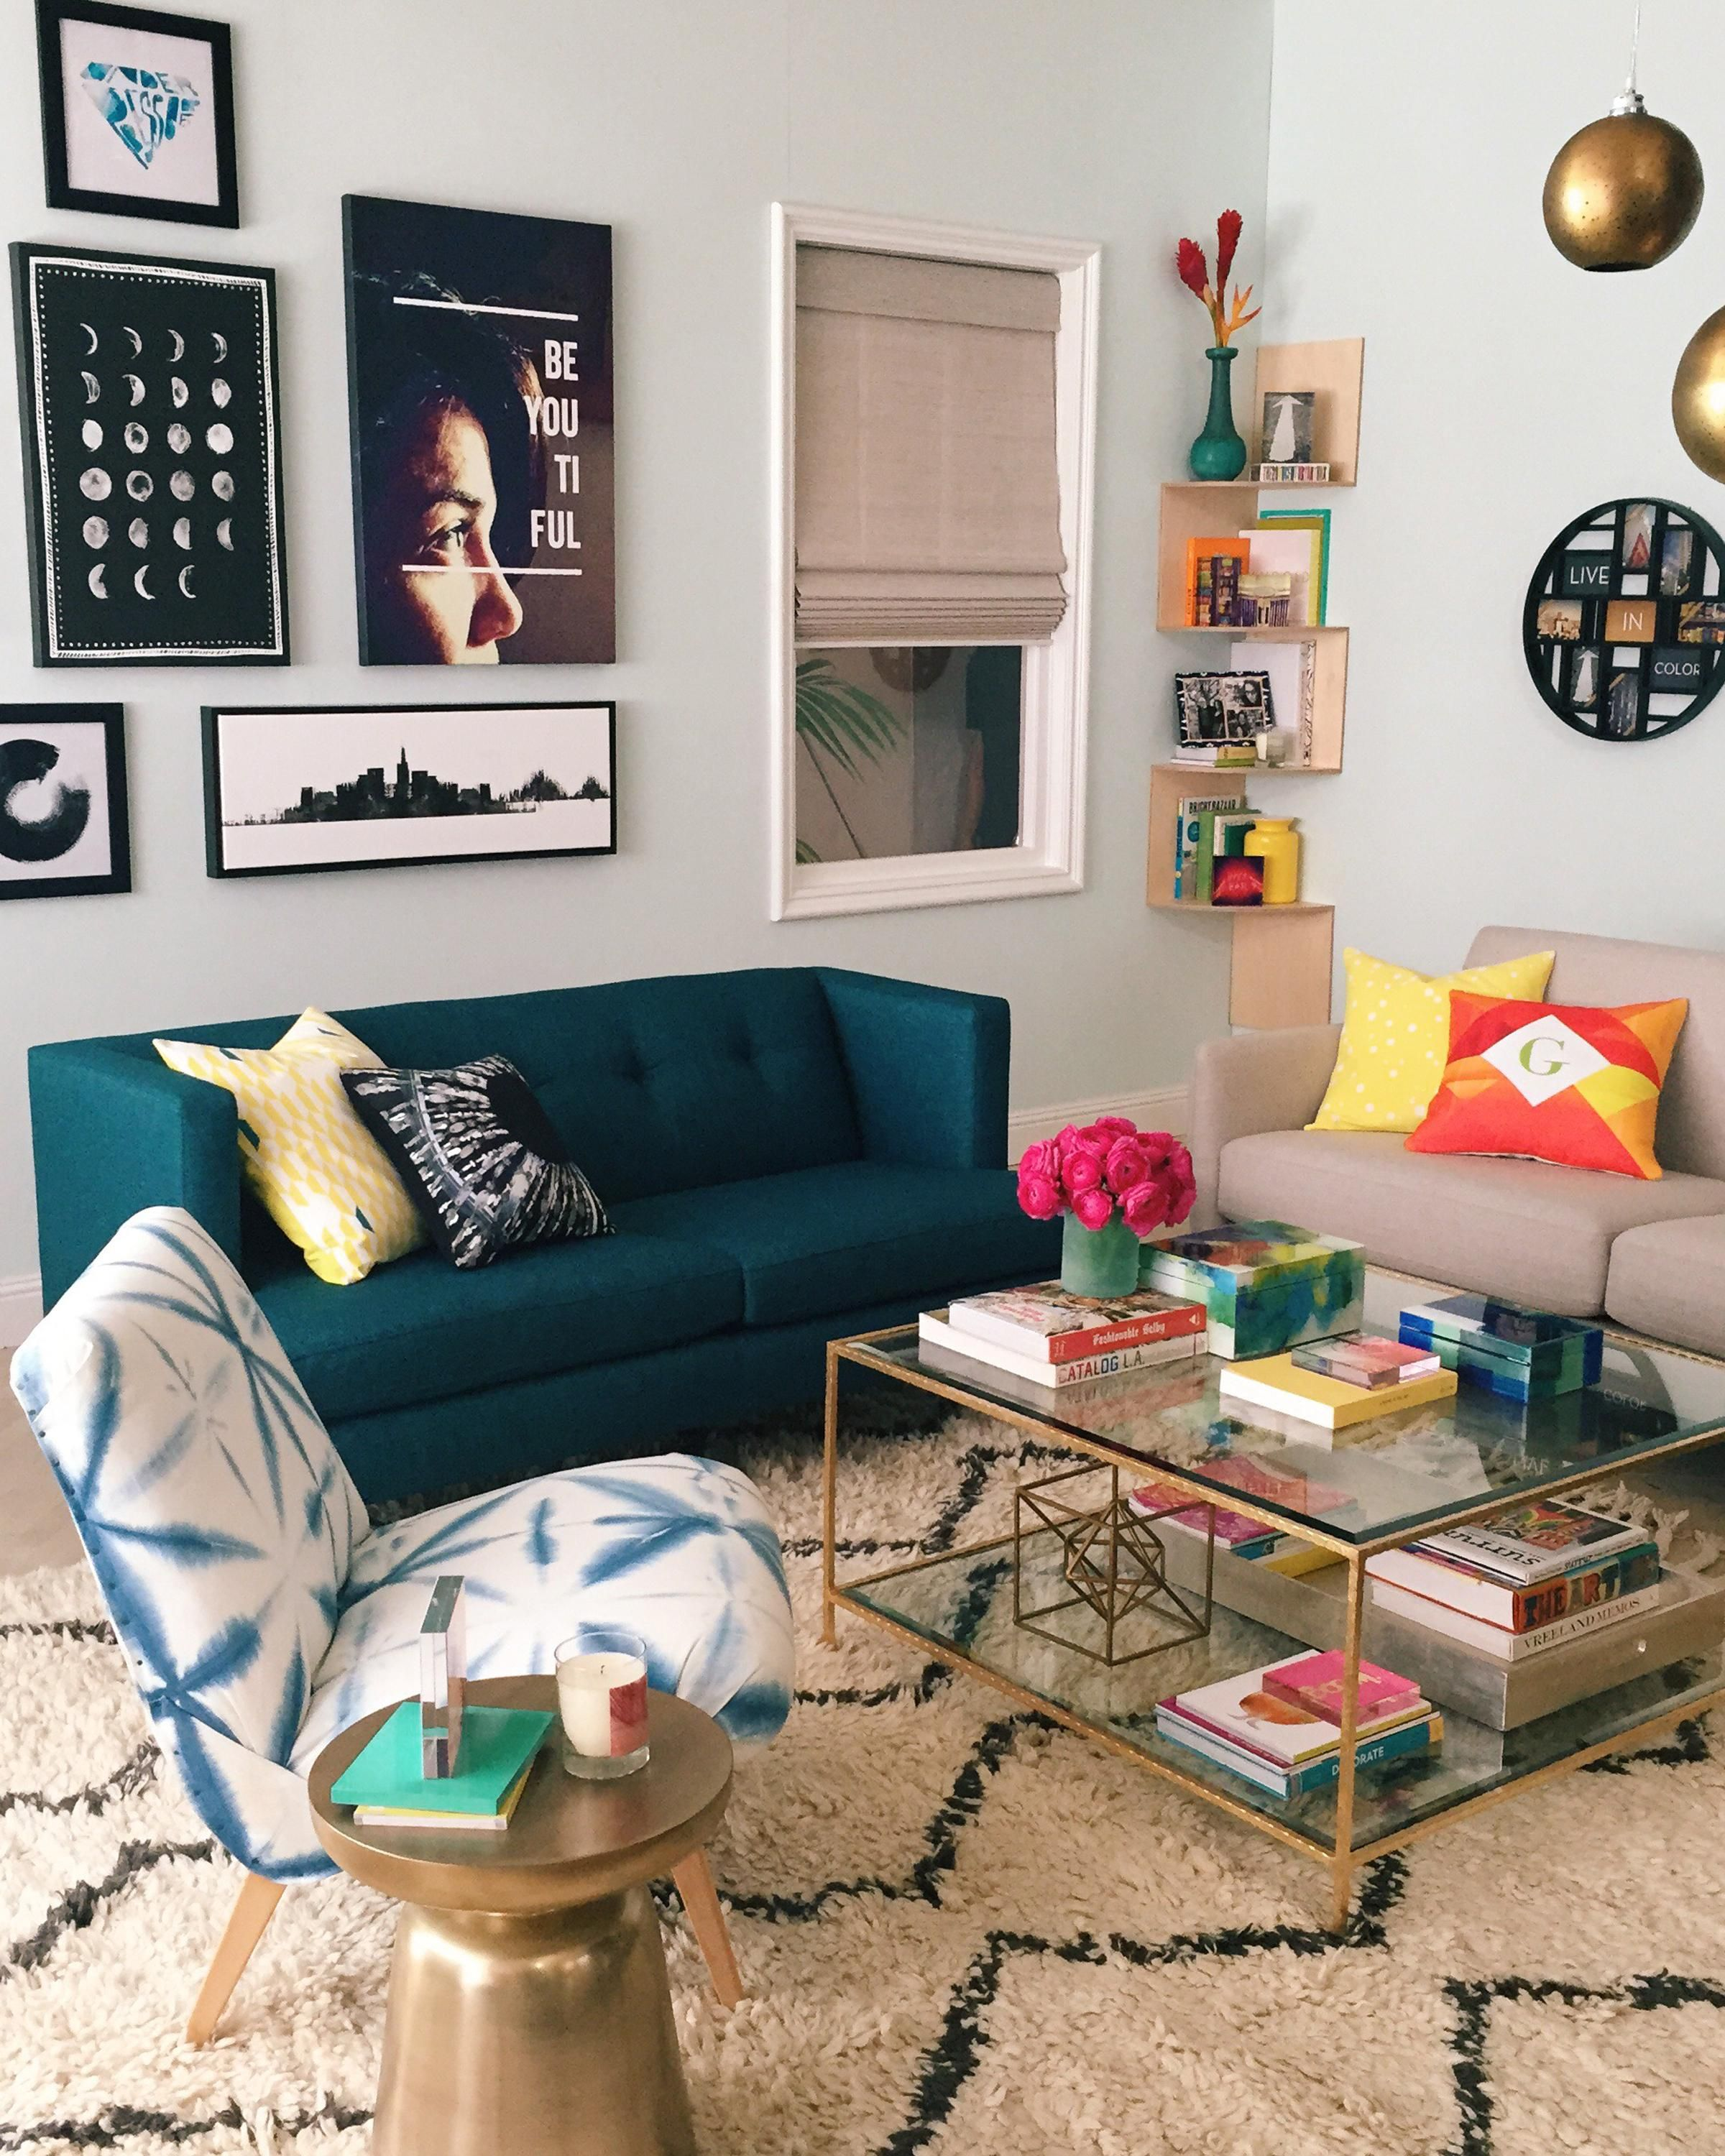 37 Best Teal Sofa Ideas Living Room Decor House Interior Teal Sofa